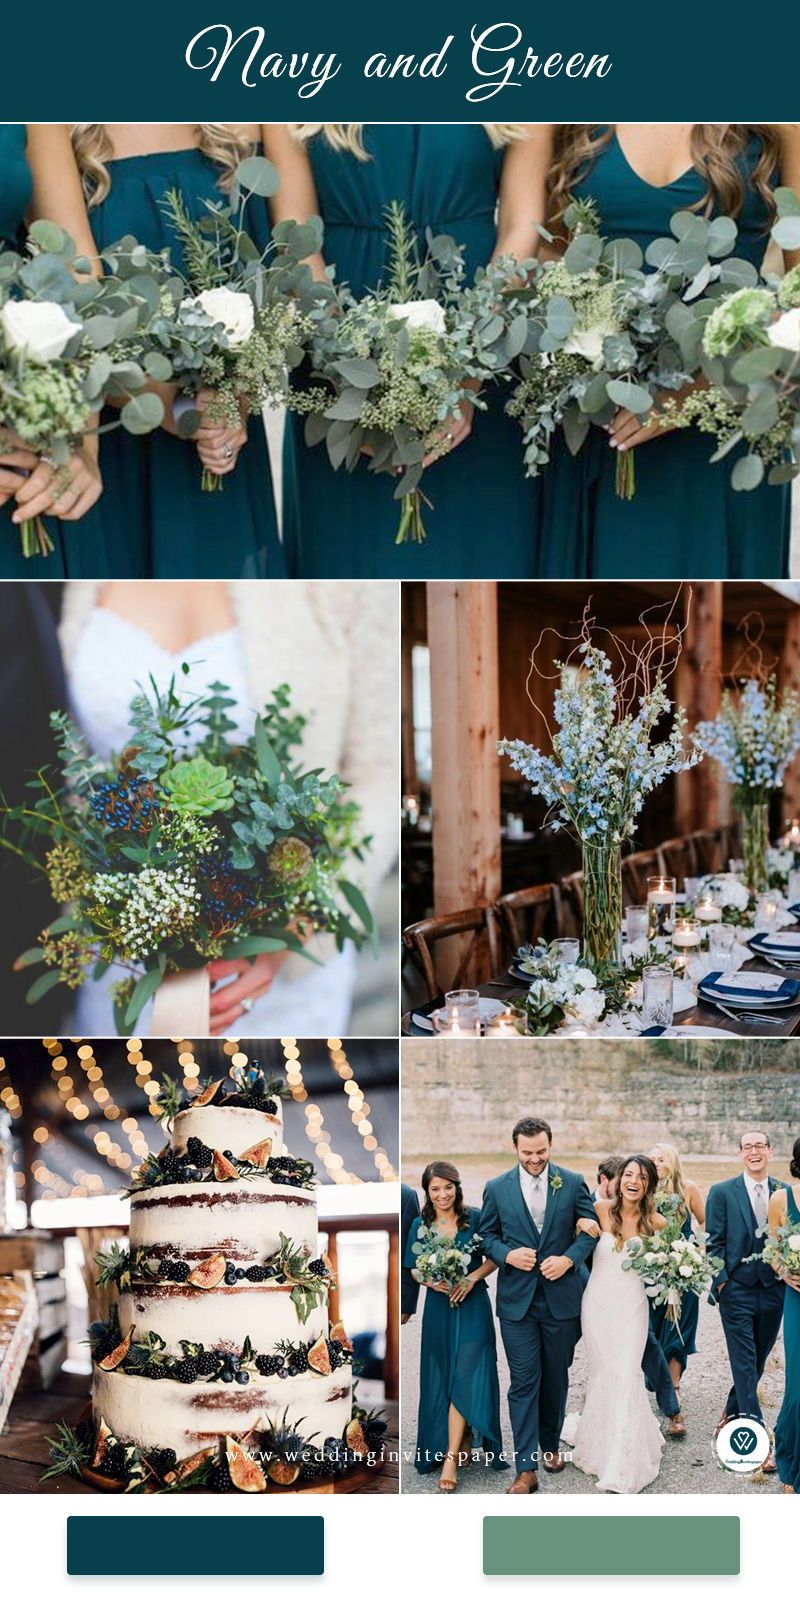 Top 8 Striking Navy Blue Wedding Color Palettes for 2019 Fall